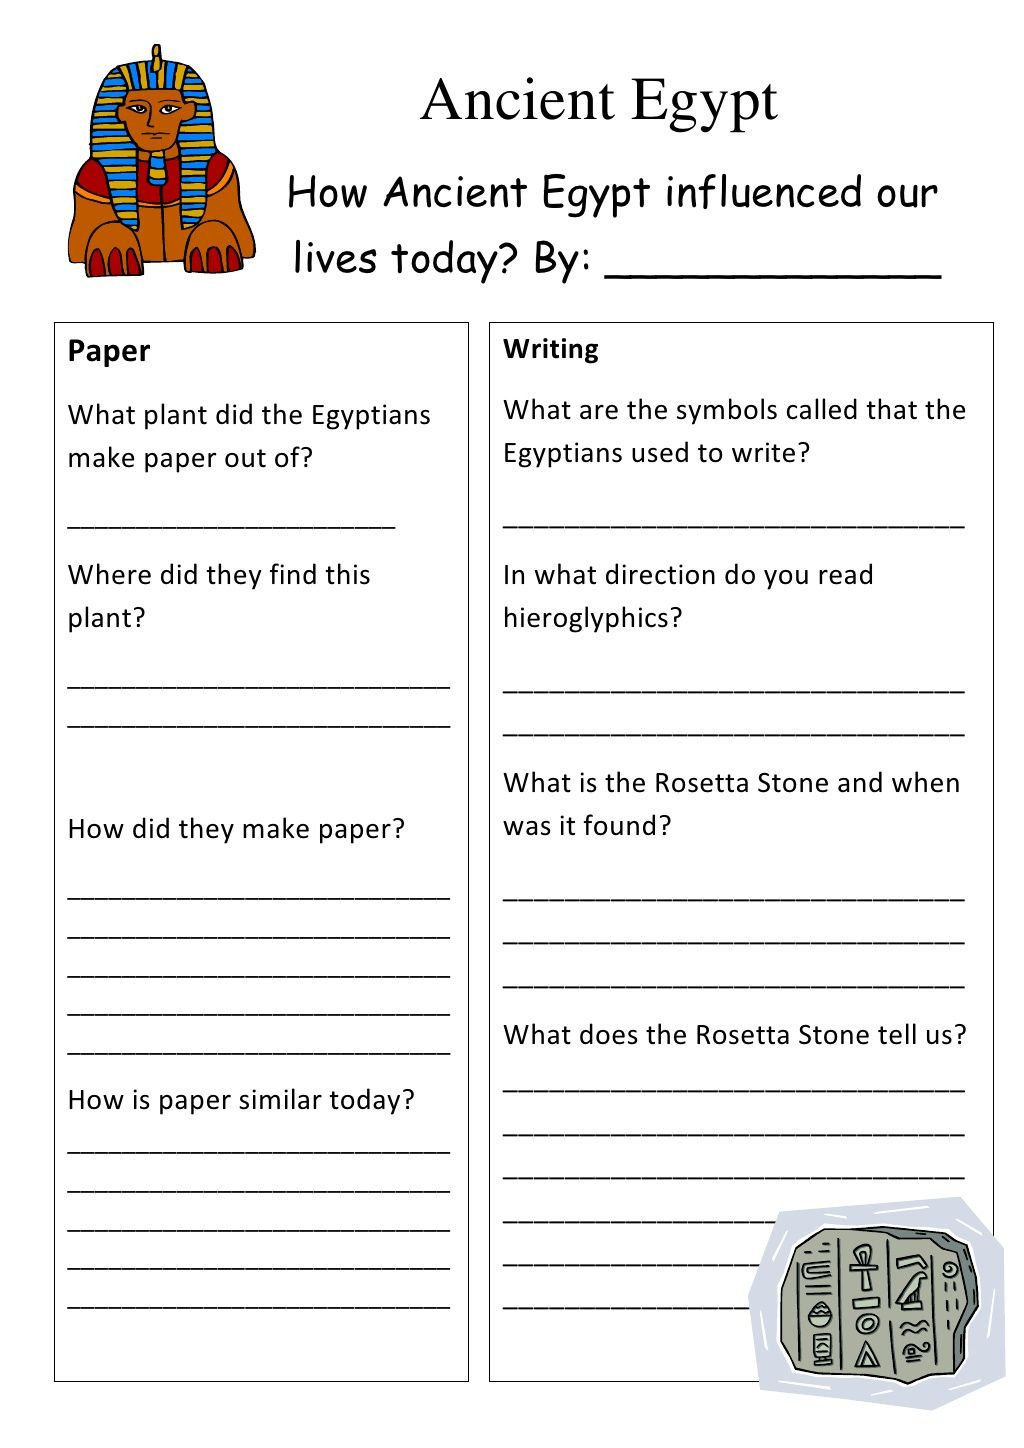 Free Ancient Egypt Worksheets For Middle School